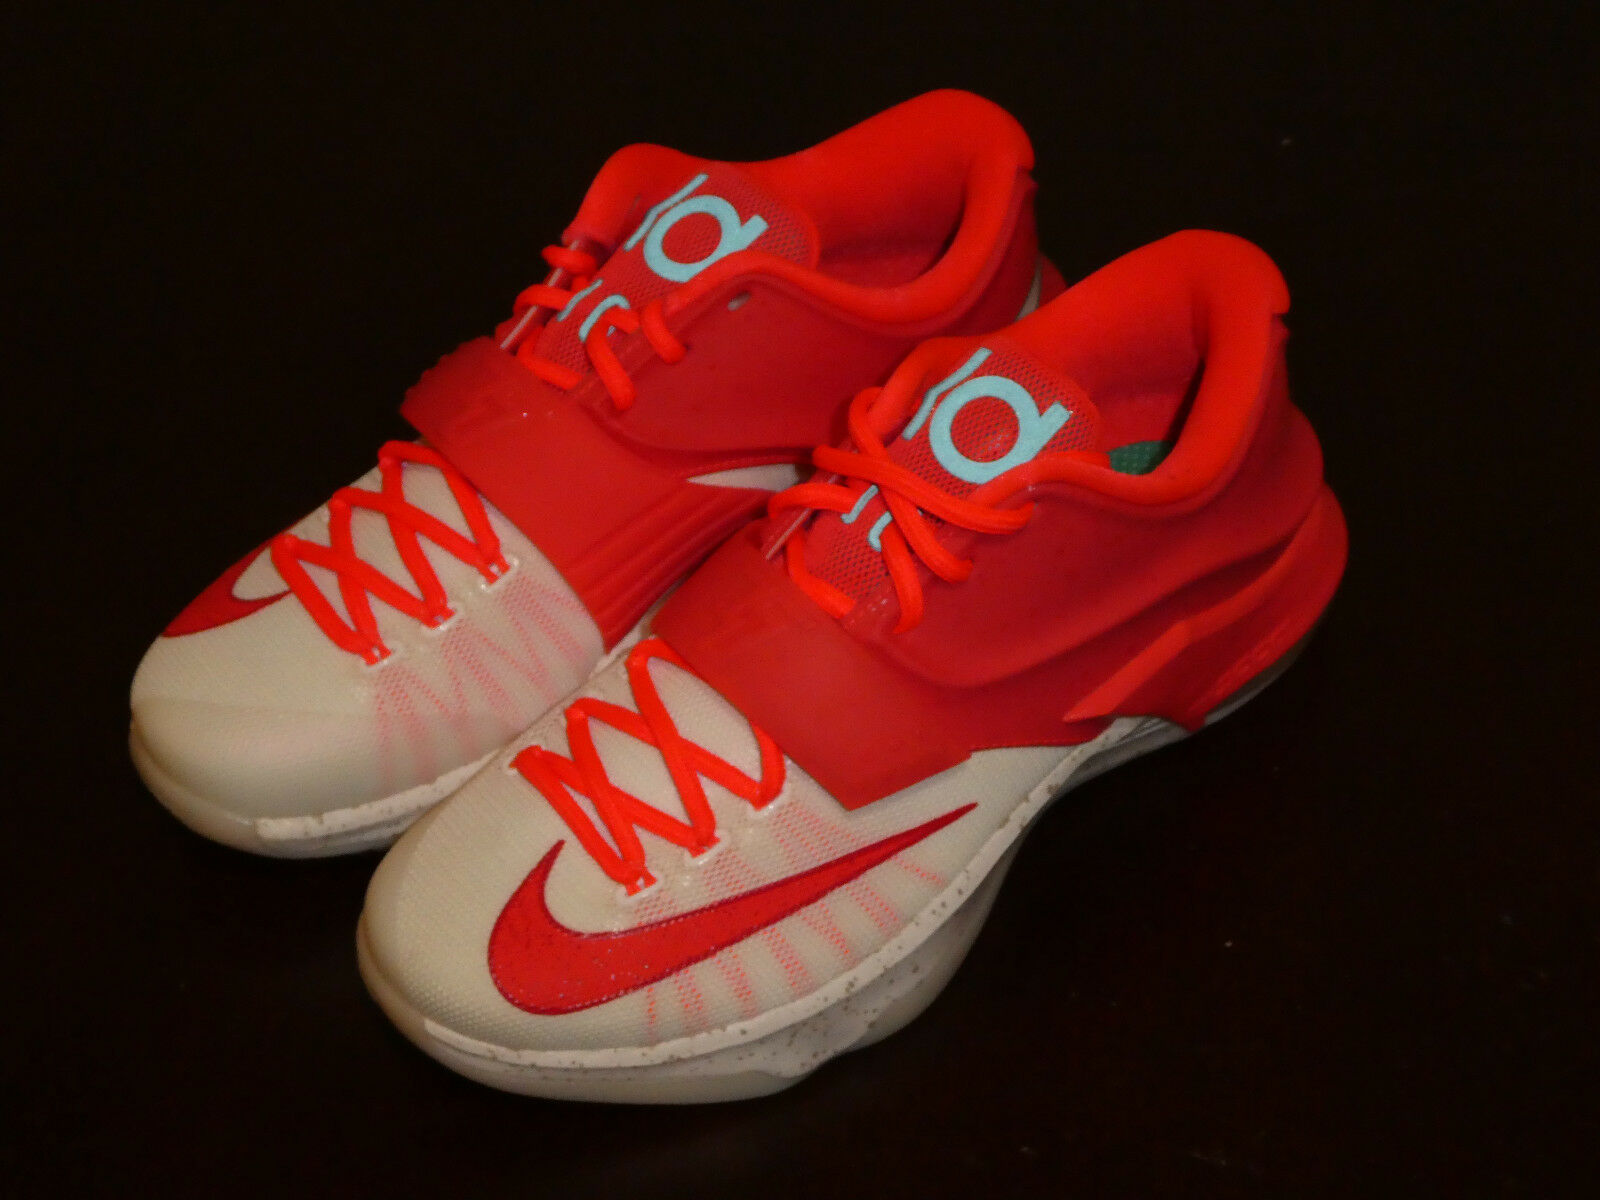 fe869c76f5 KD VII Xmas Christmas shoes mens new 707560 613 sneakers Nike ncetbs1368-Athletic  Shoes